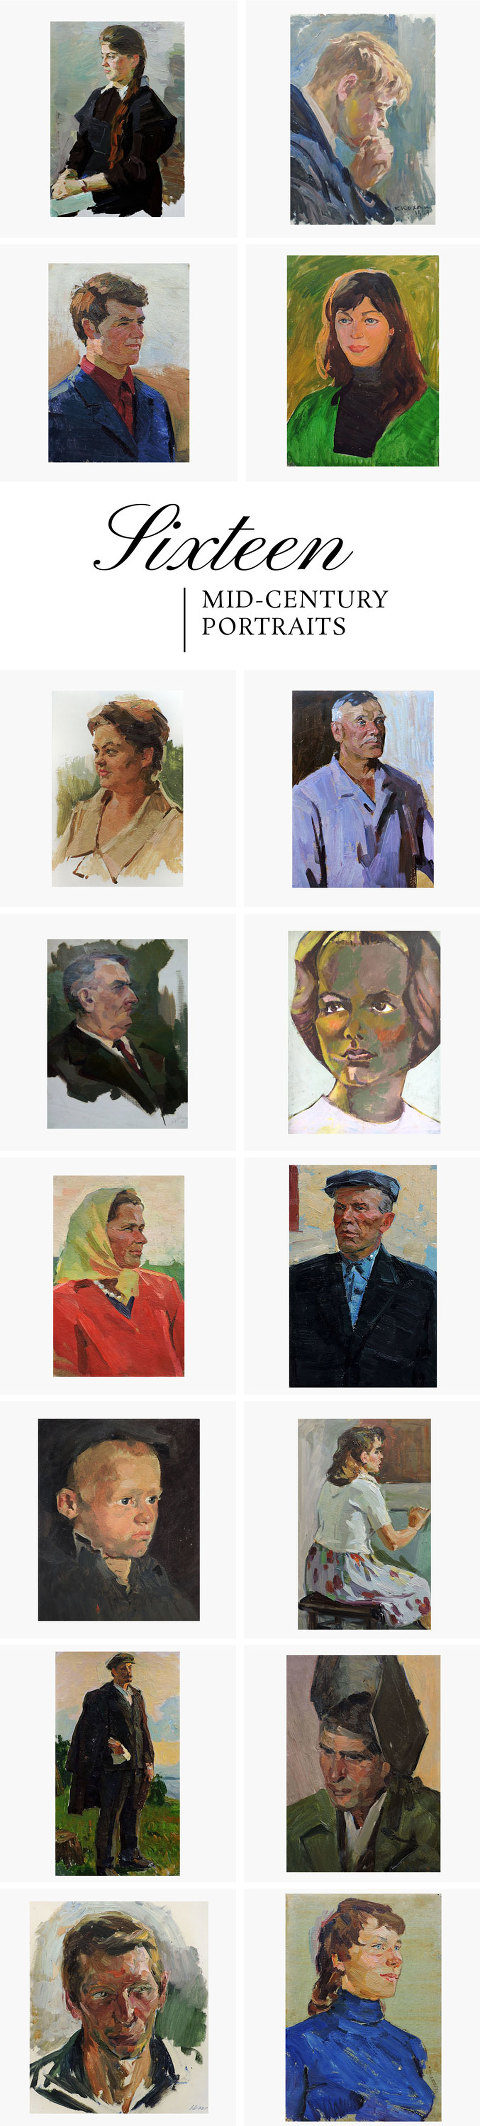 Roundup Of 16 Mid-Century Portraits From Etsy